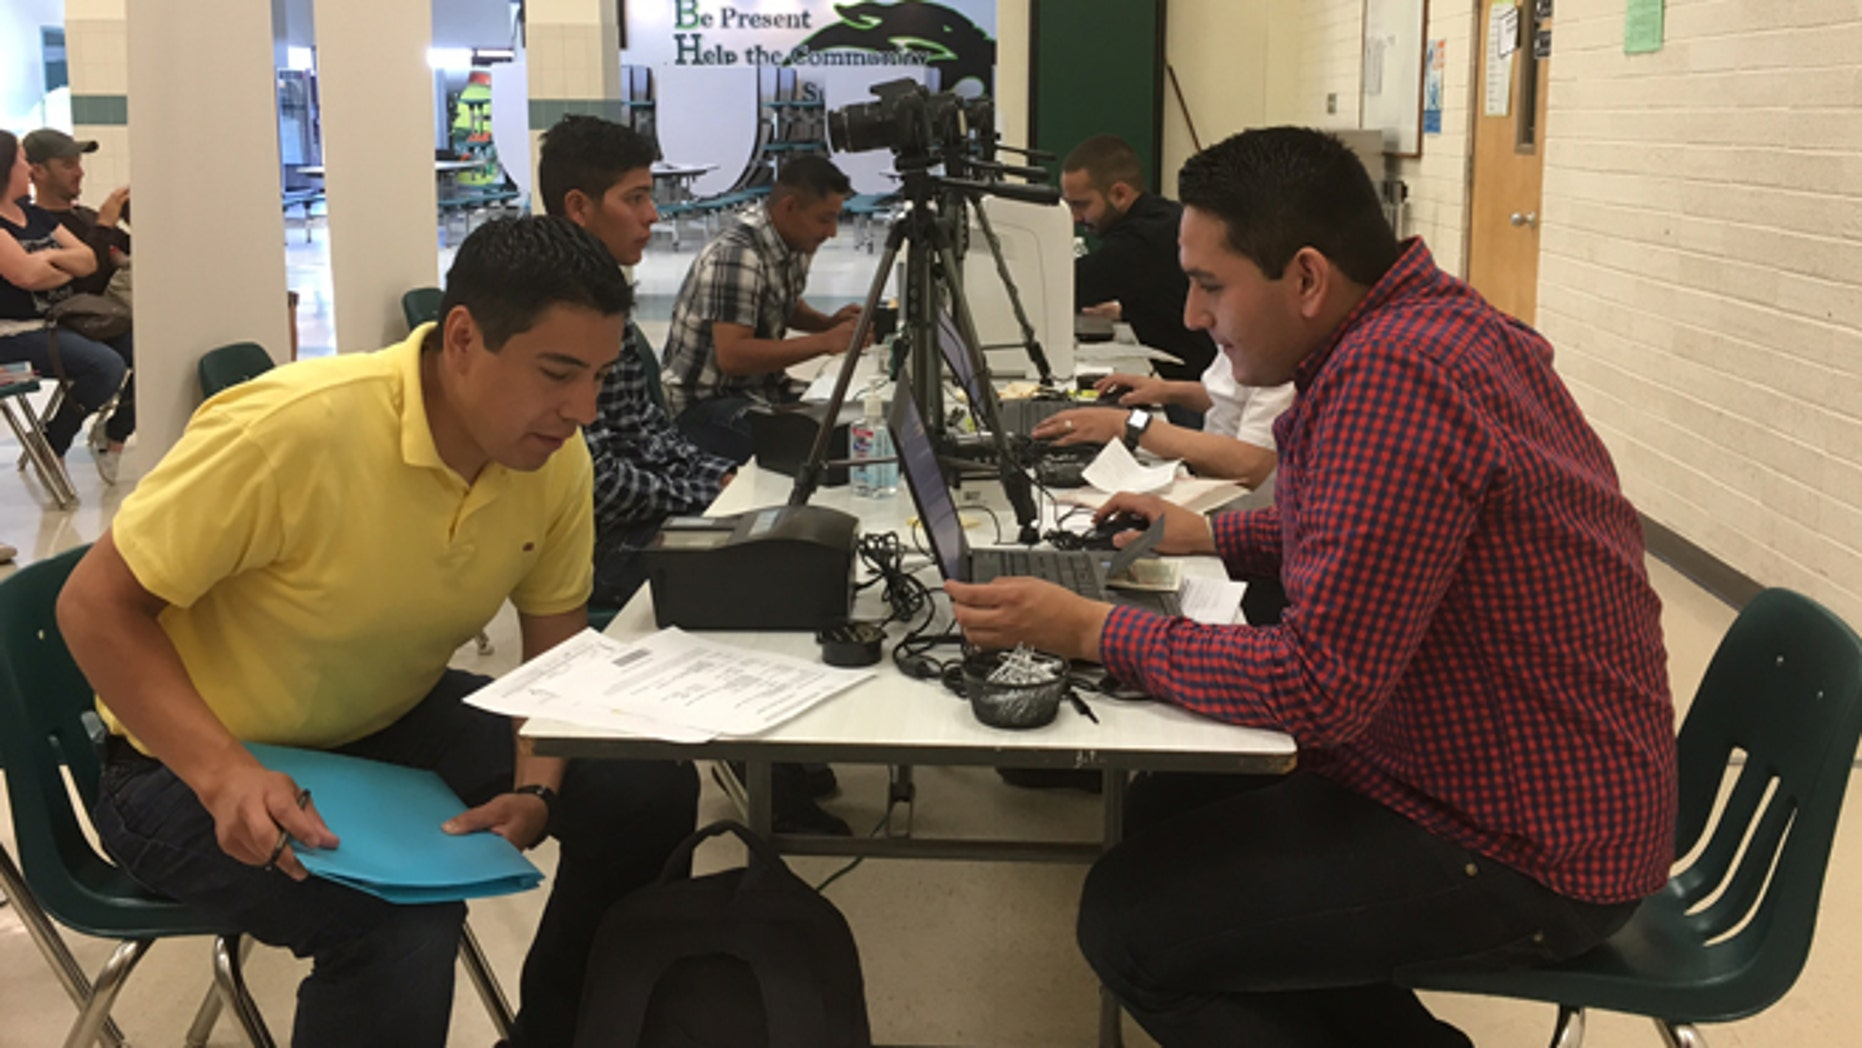 On June 18, 2016 Mexico's consulate partnered with the Montana Immigrant Justice Association and the Montana Migrant and Seasonal Farmworkers Council to provide immigrants with consular services and health checkups. (Courtesy: Mexican Consulate in Boise)